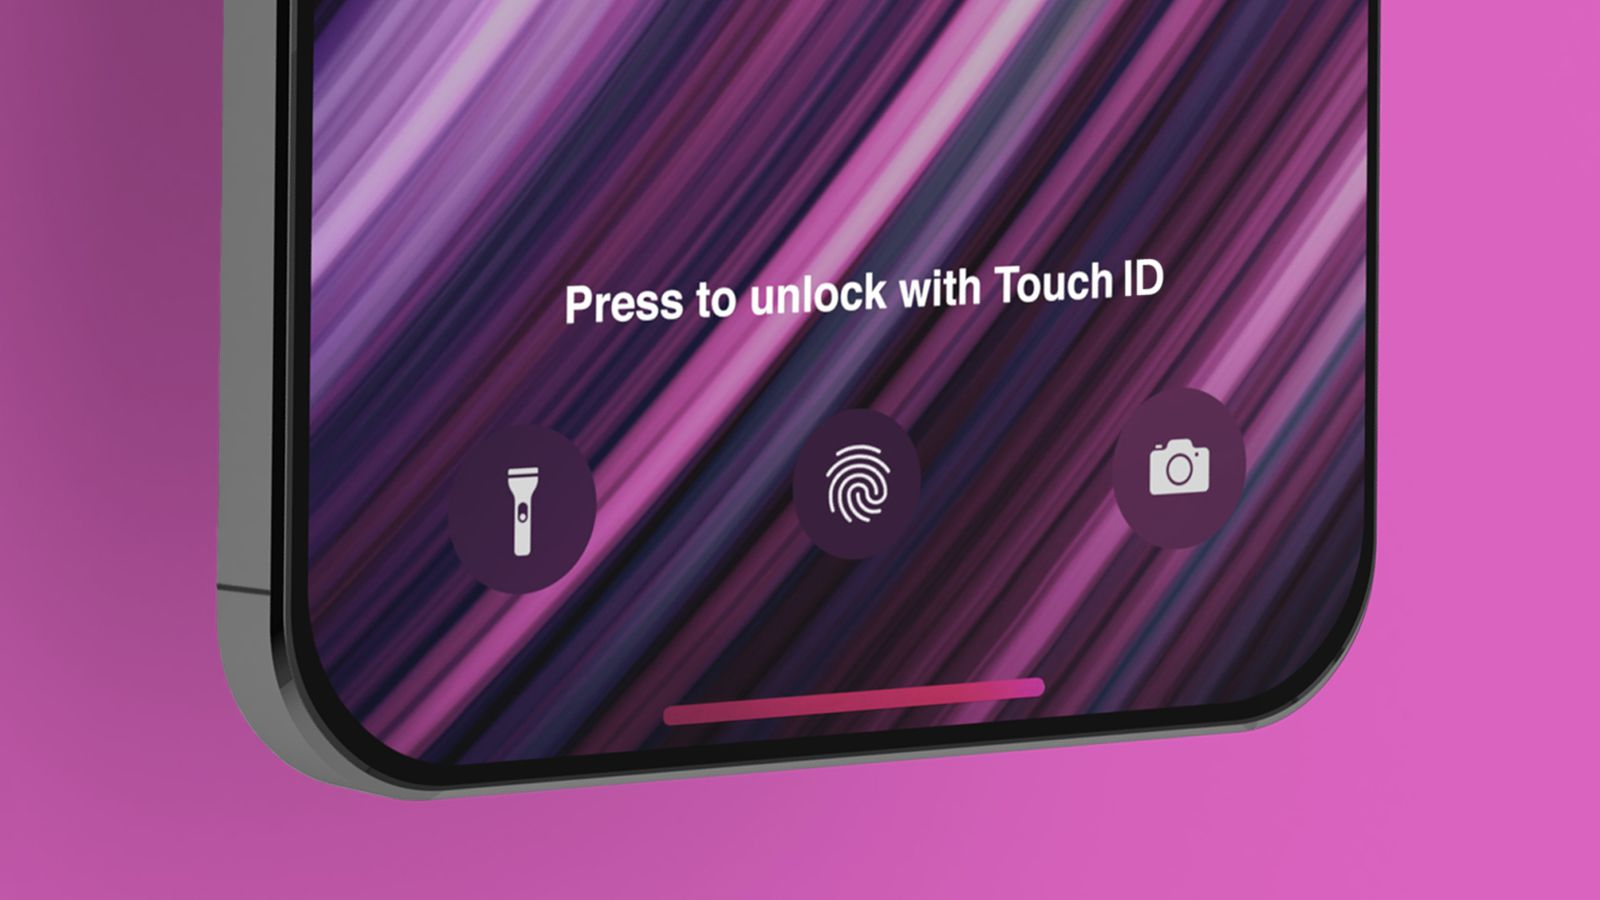 No touch ID on upcoming iPhone 13